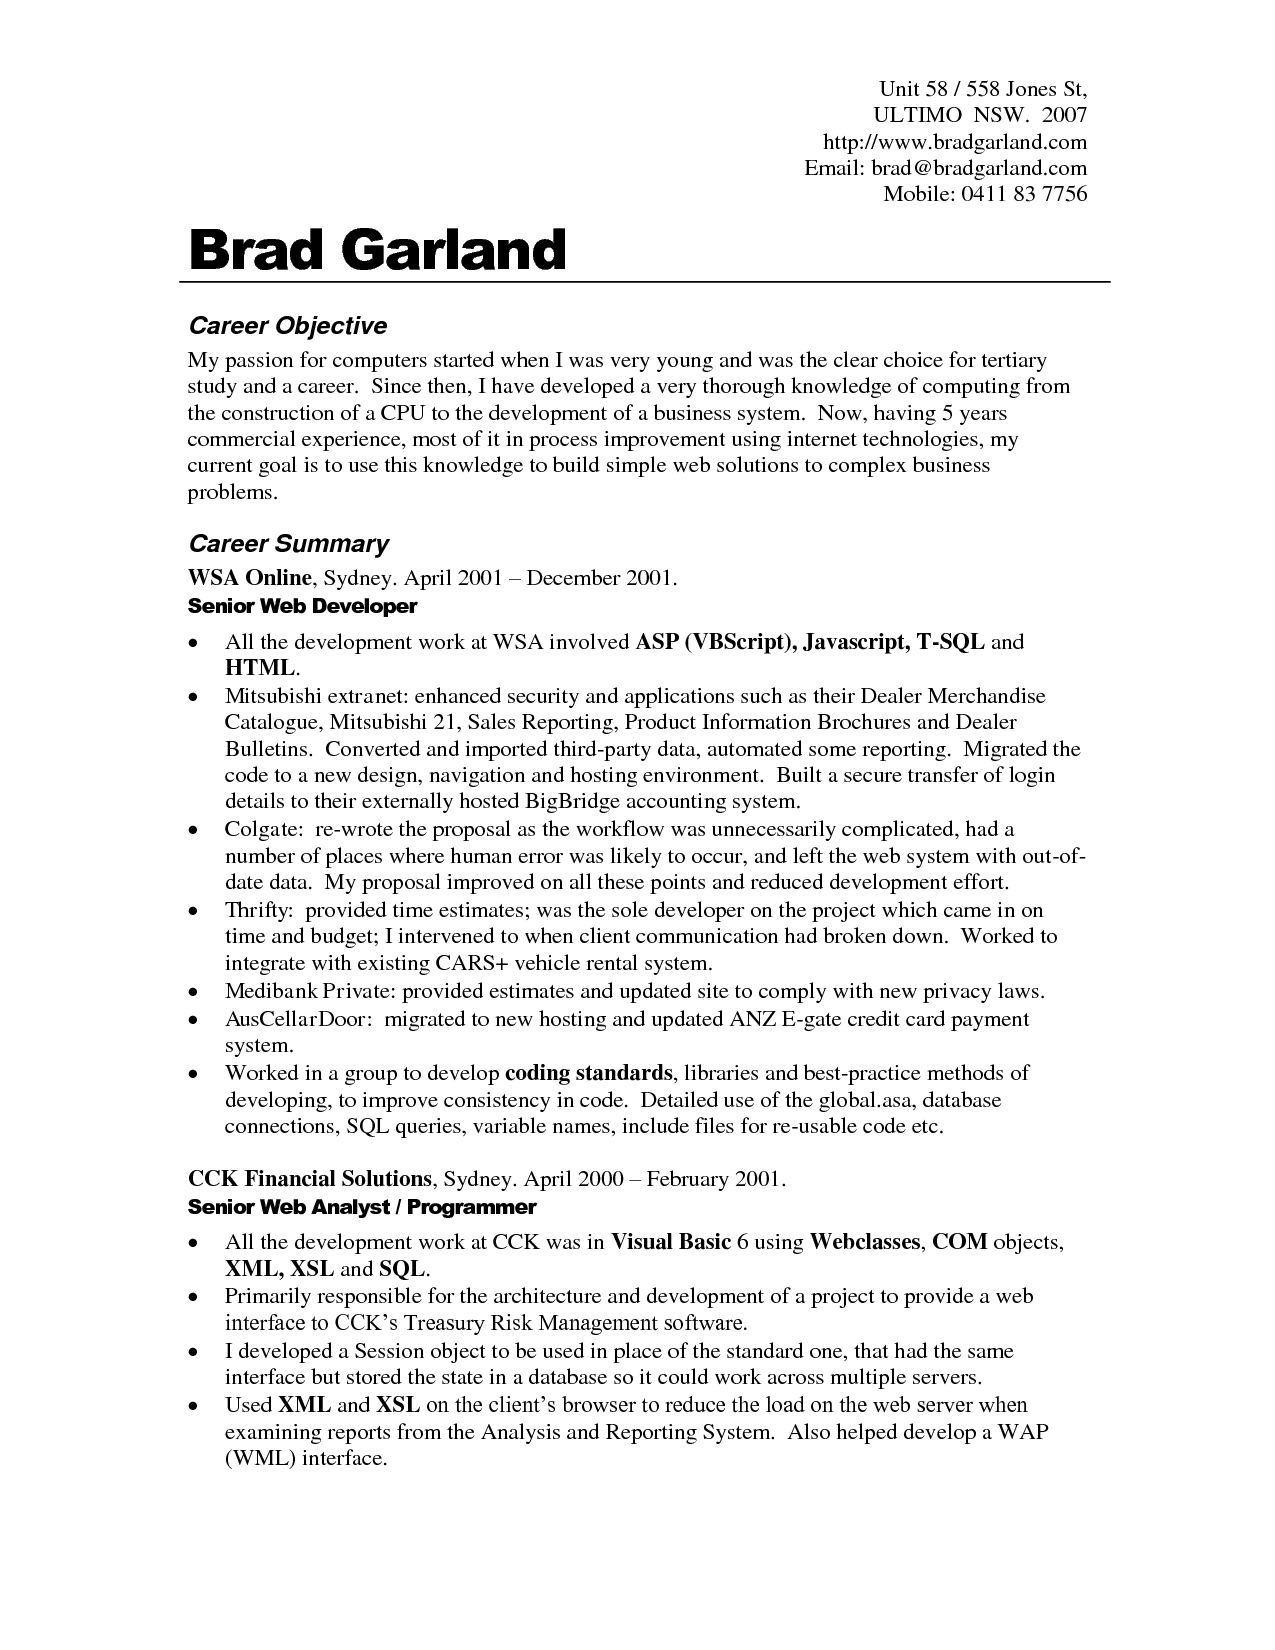 Example Of An Objective On A Resume Classy Resume Examples Job Objective  Sample Resume Entry Level And .